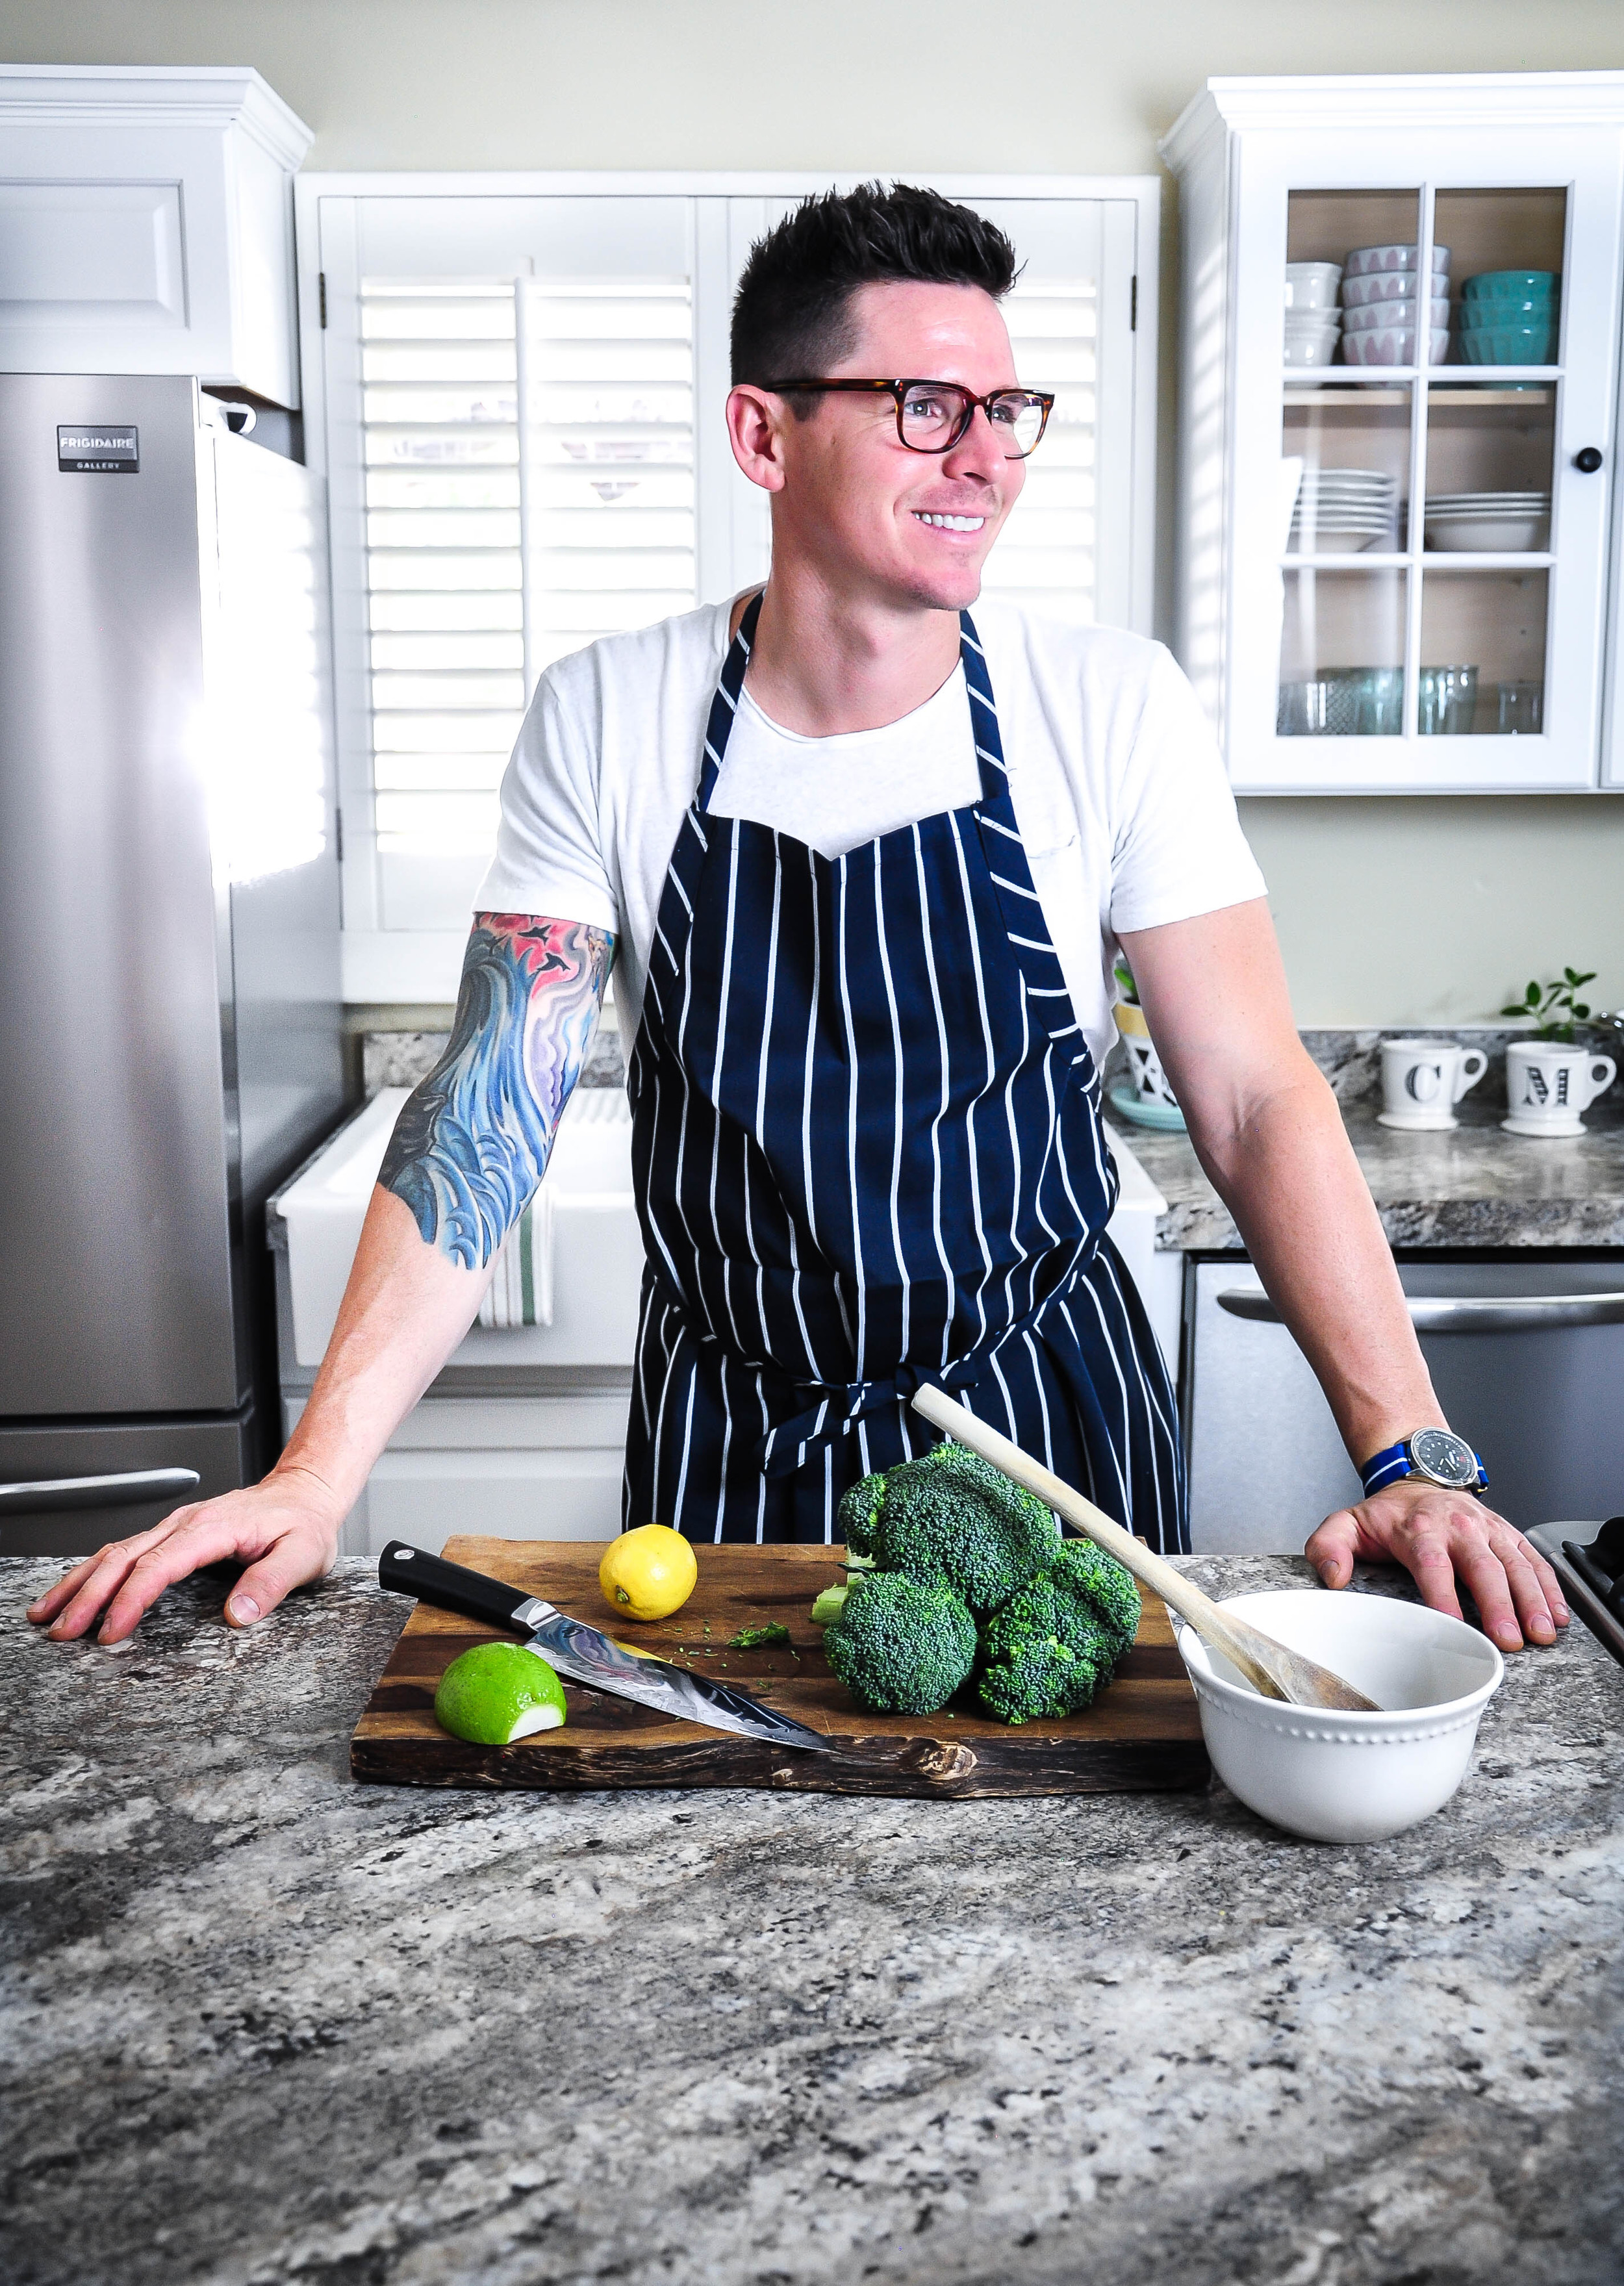 man in apron cooking in remodeled kitchen